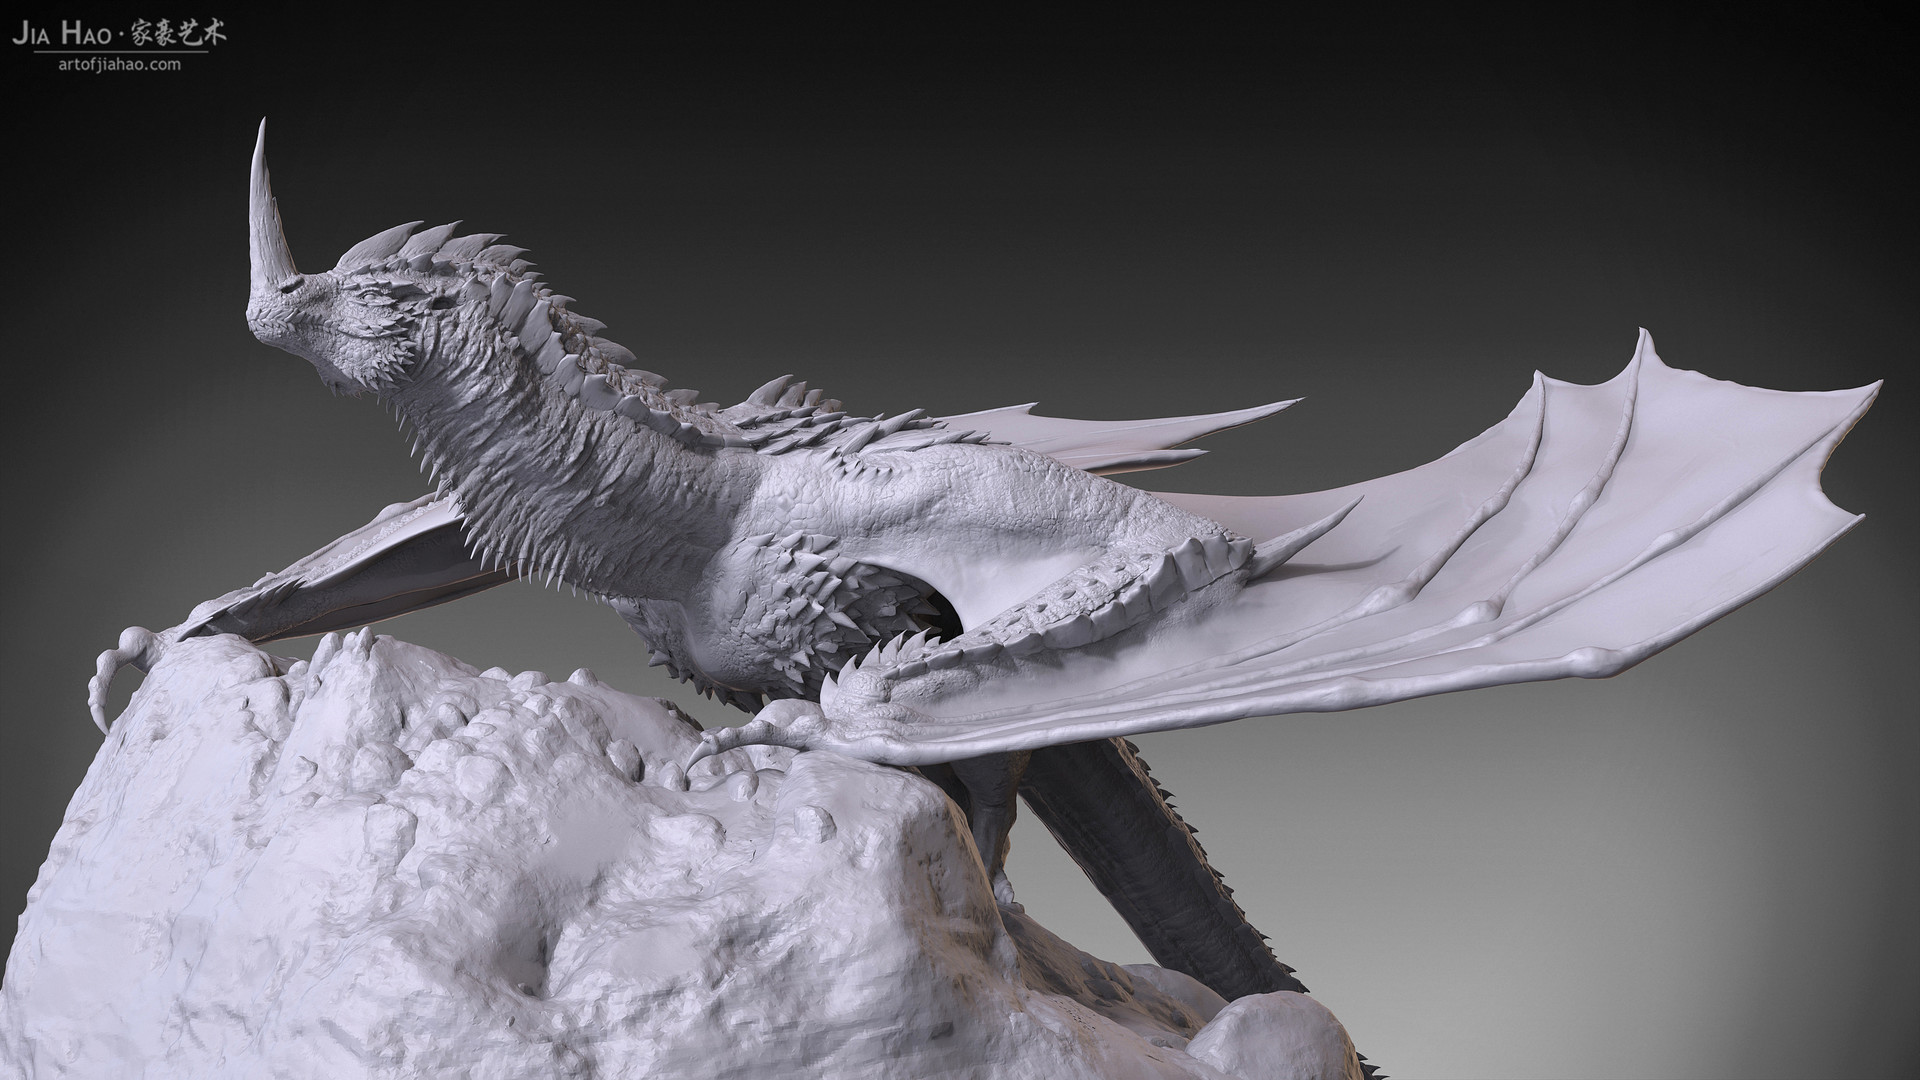 Jia hao 2017 horneddragon digitalsculpting 03